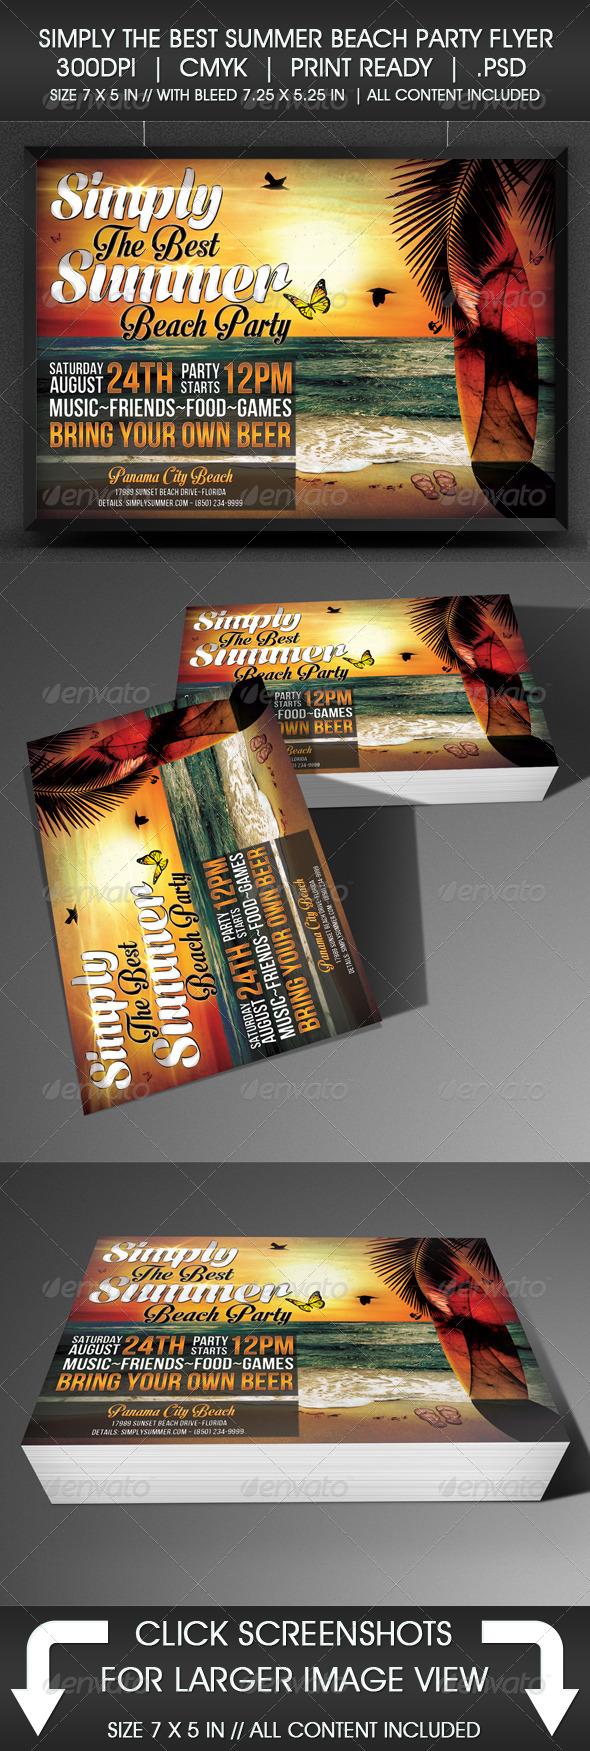 Simply The Best Summer Beach Party Flyer - Flyers Print Templates